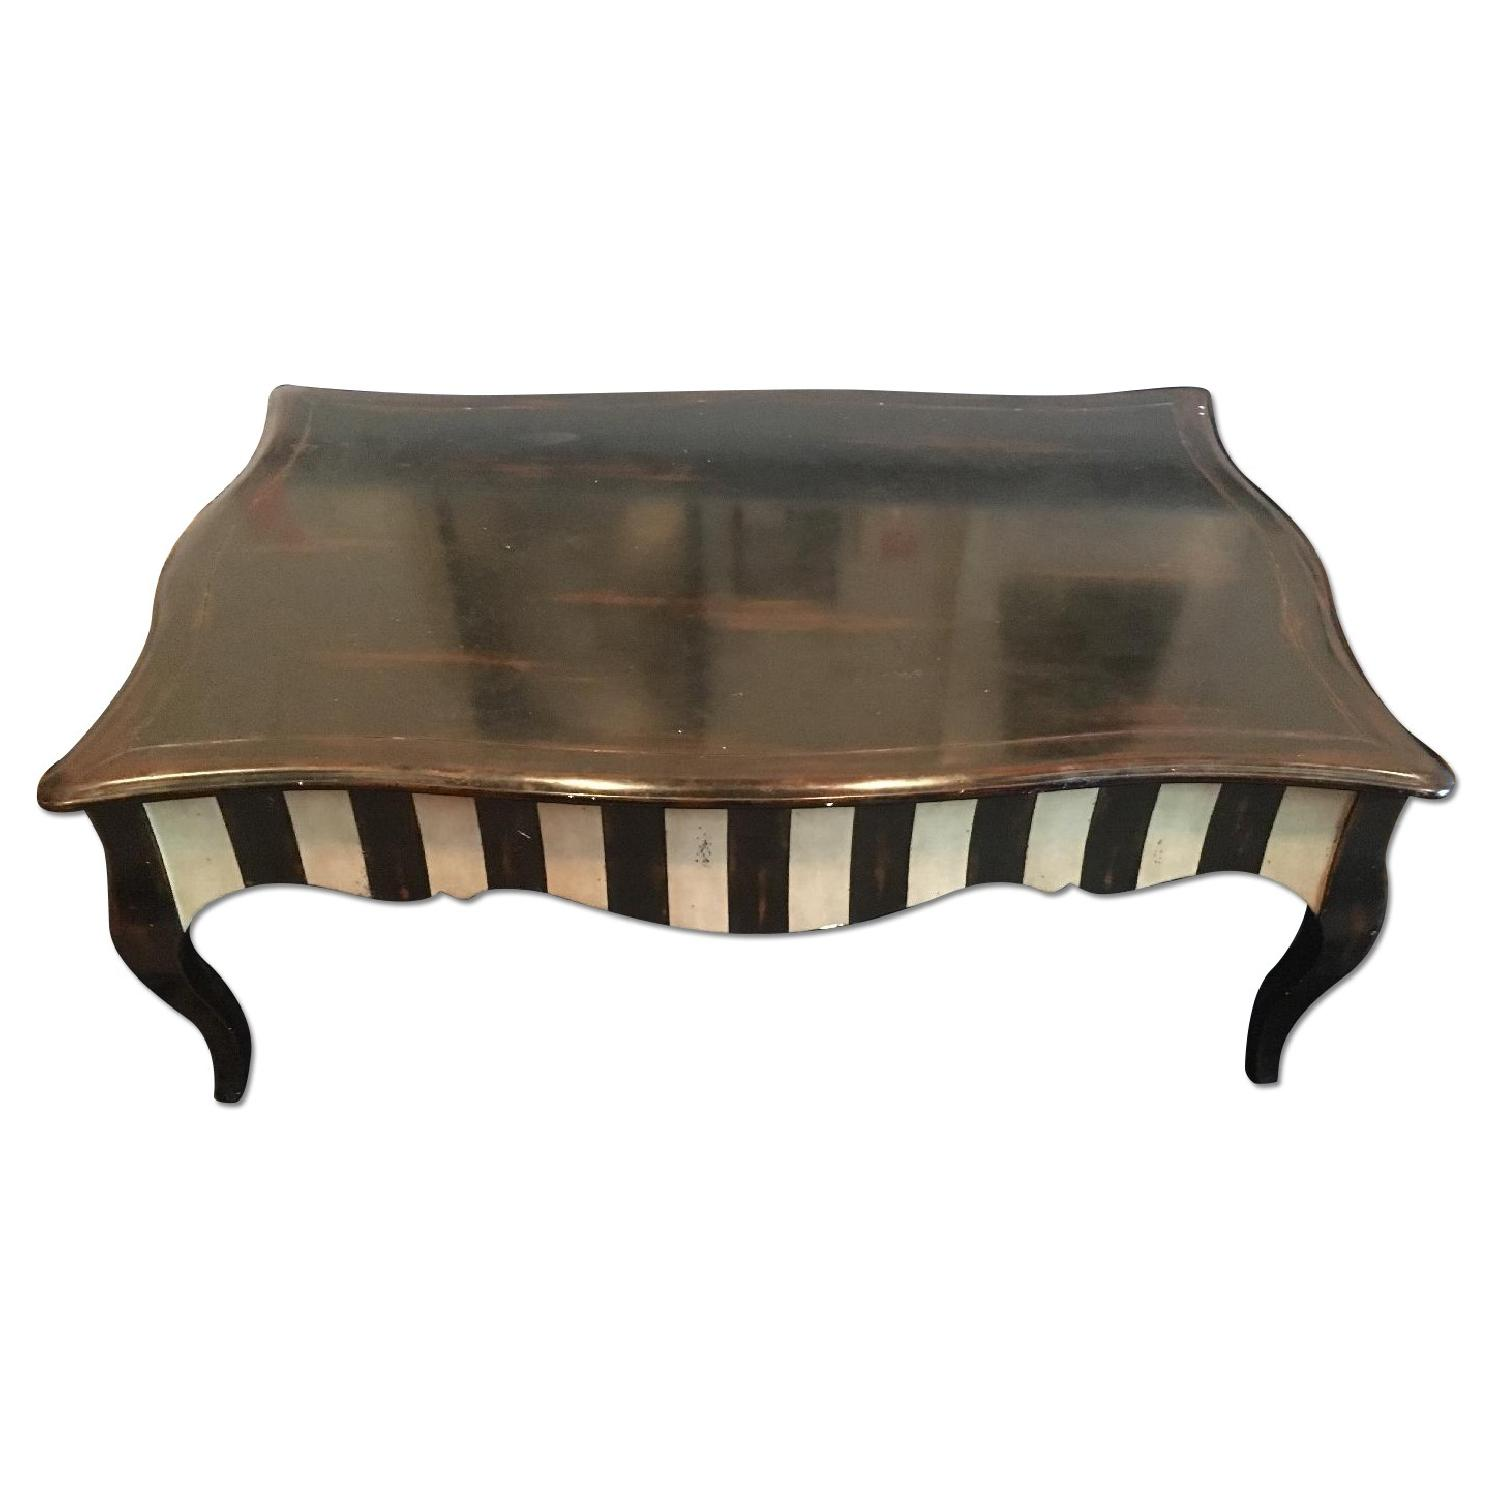 abc carpet and home french country style coffee table - aptdeco